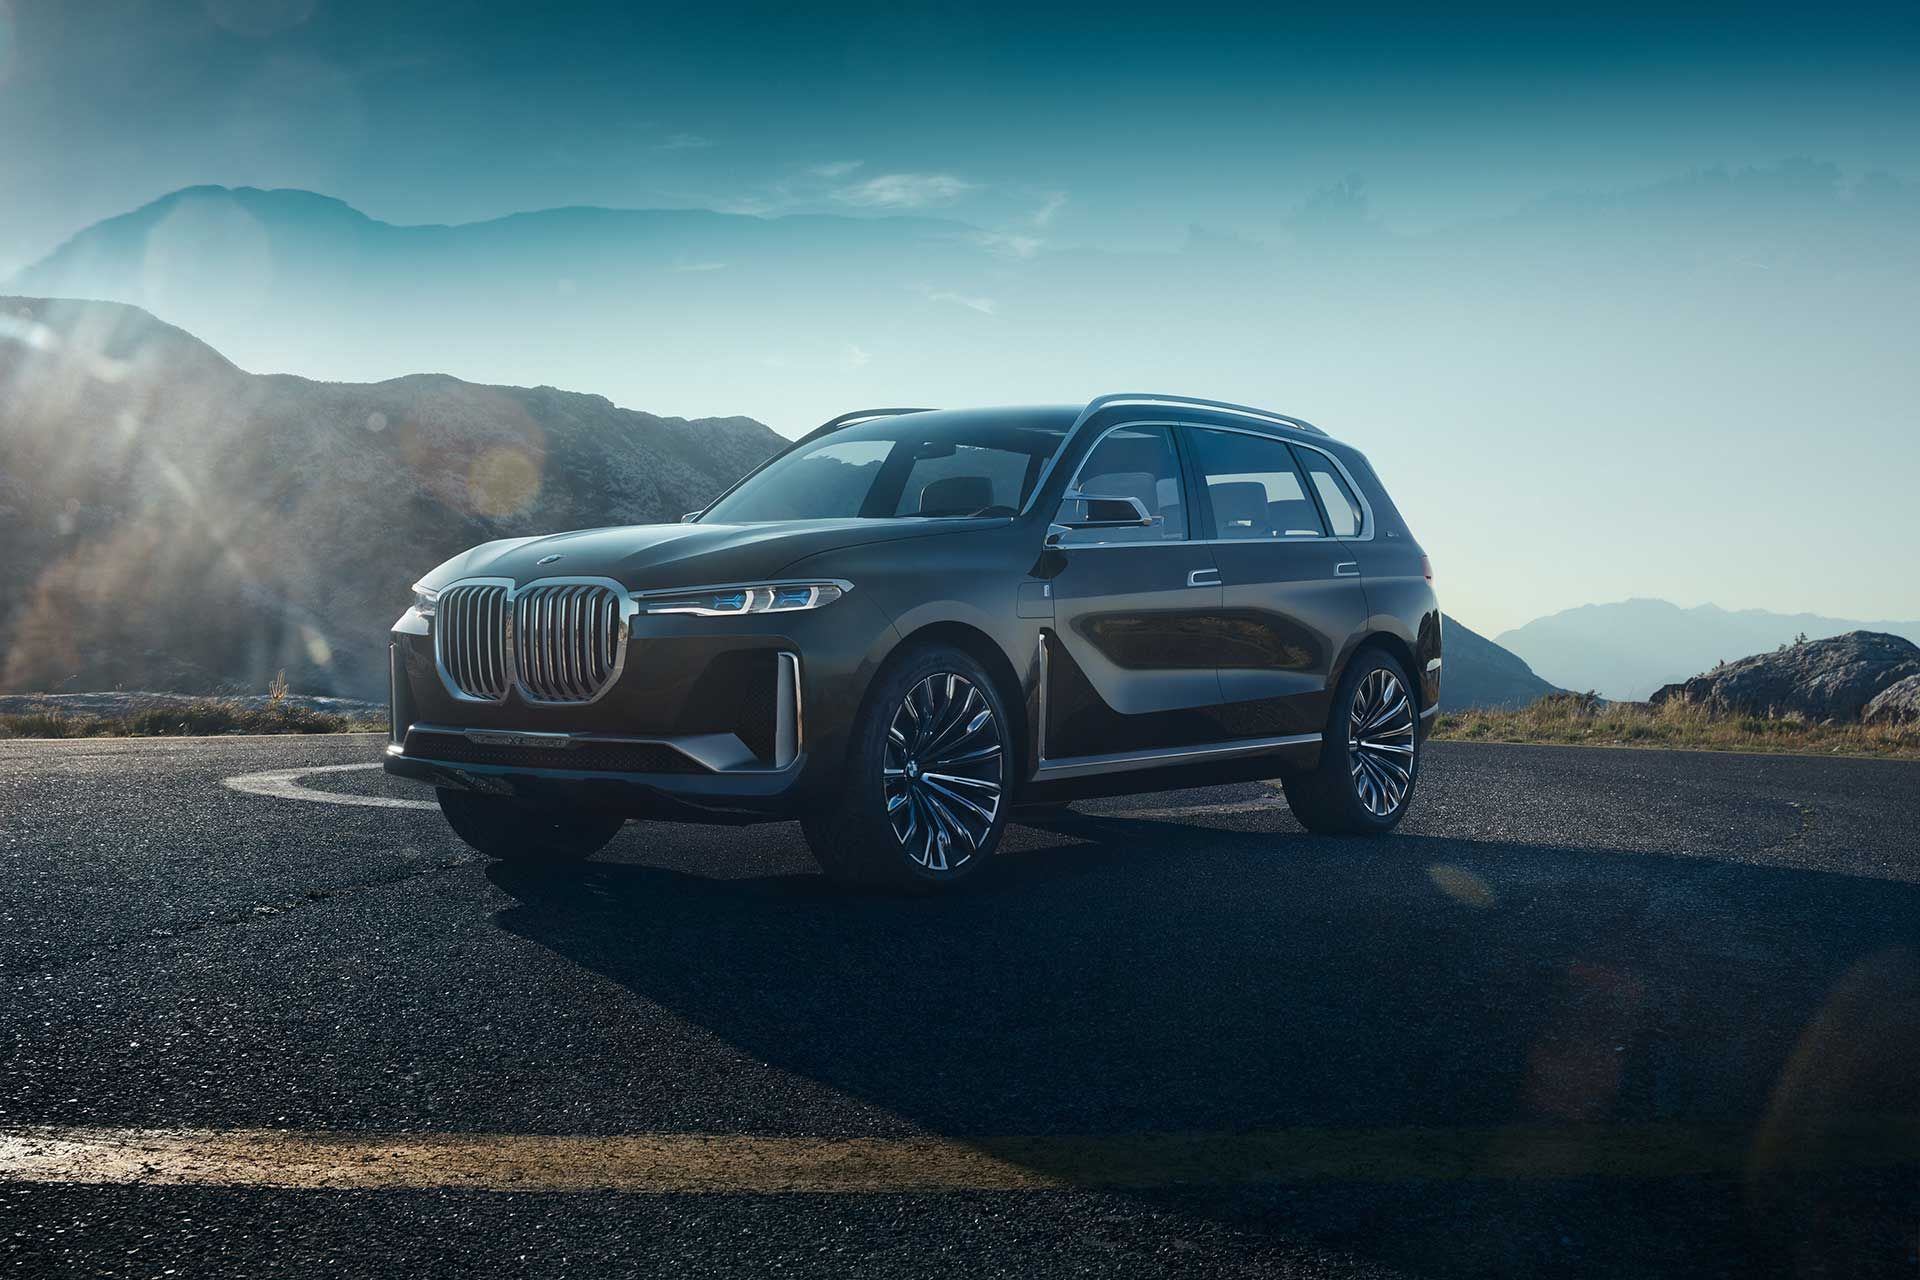 BMW Concept X7 iPerformance introduces a whole new take on luxury for the German brand